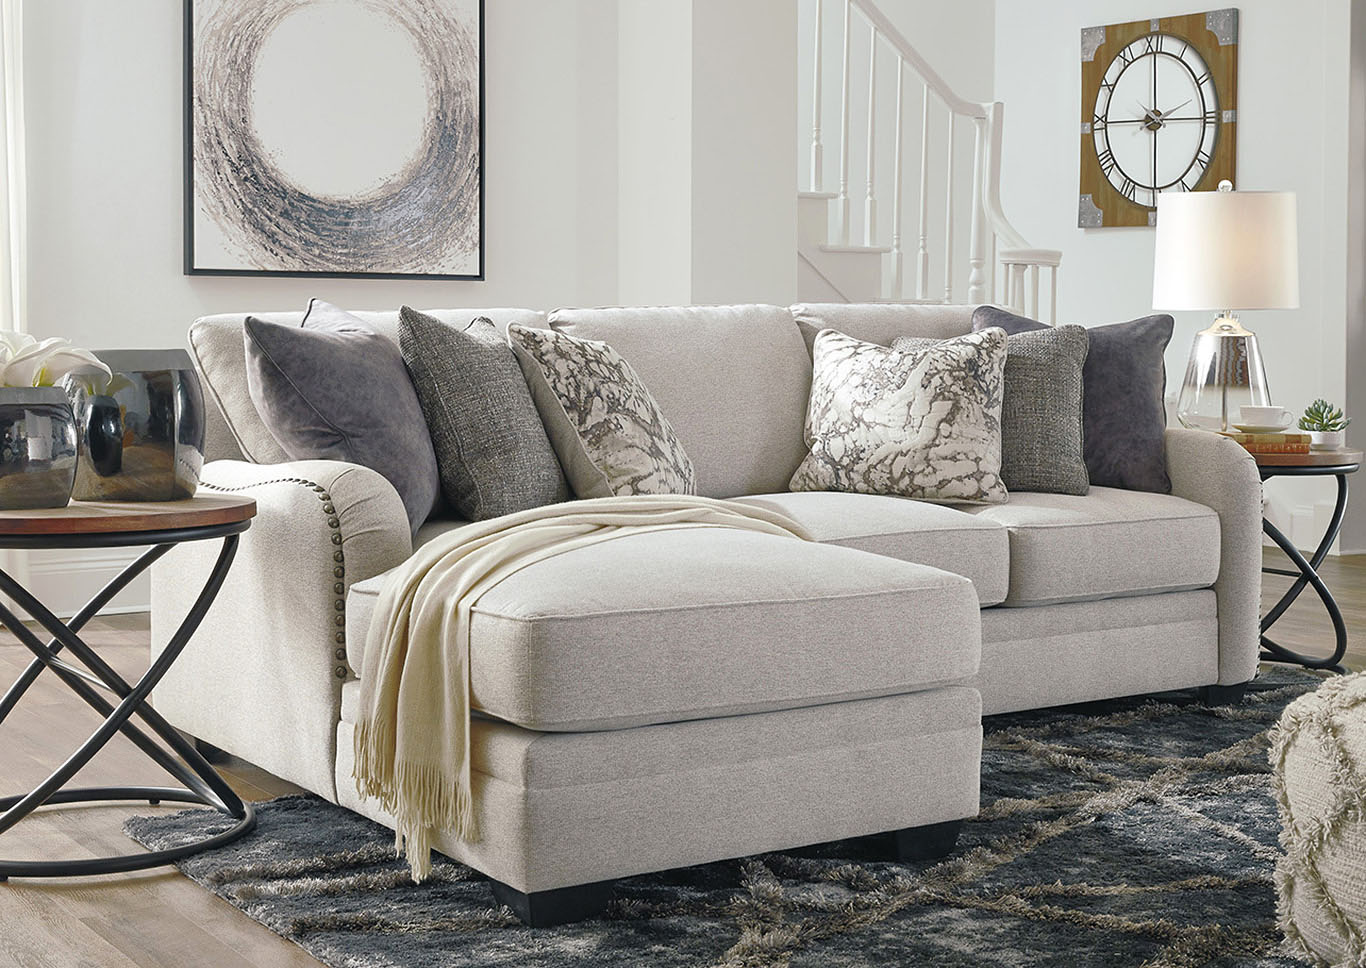 Dellara Chalk LAF Chaise Sectional,Benchcraft